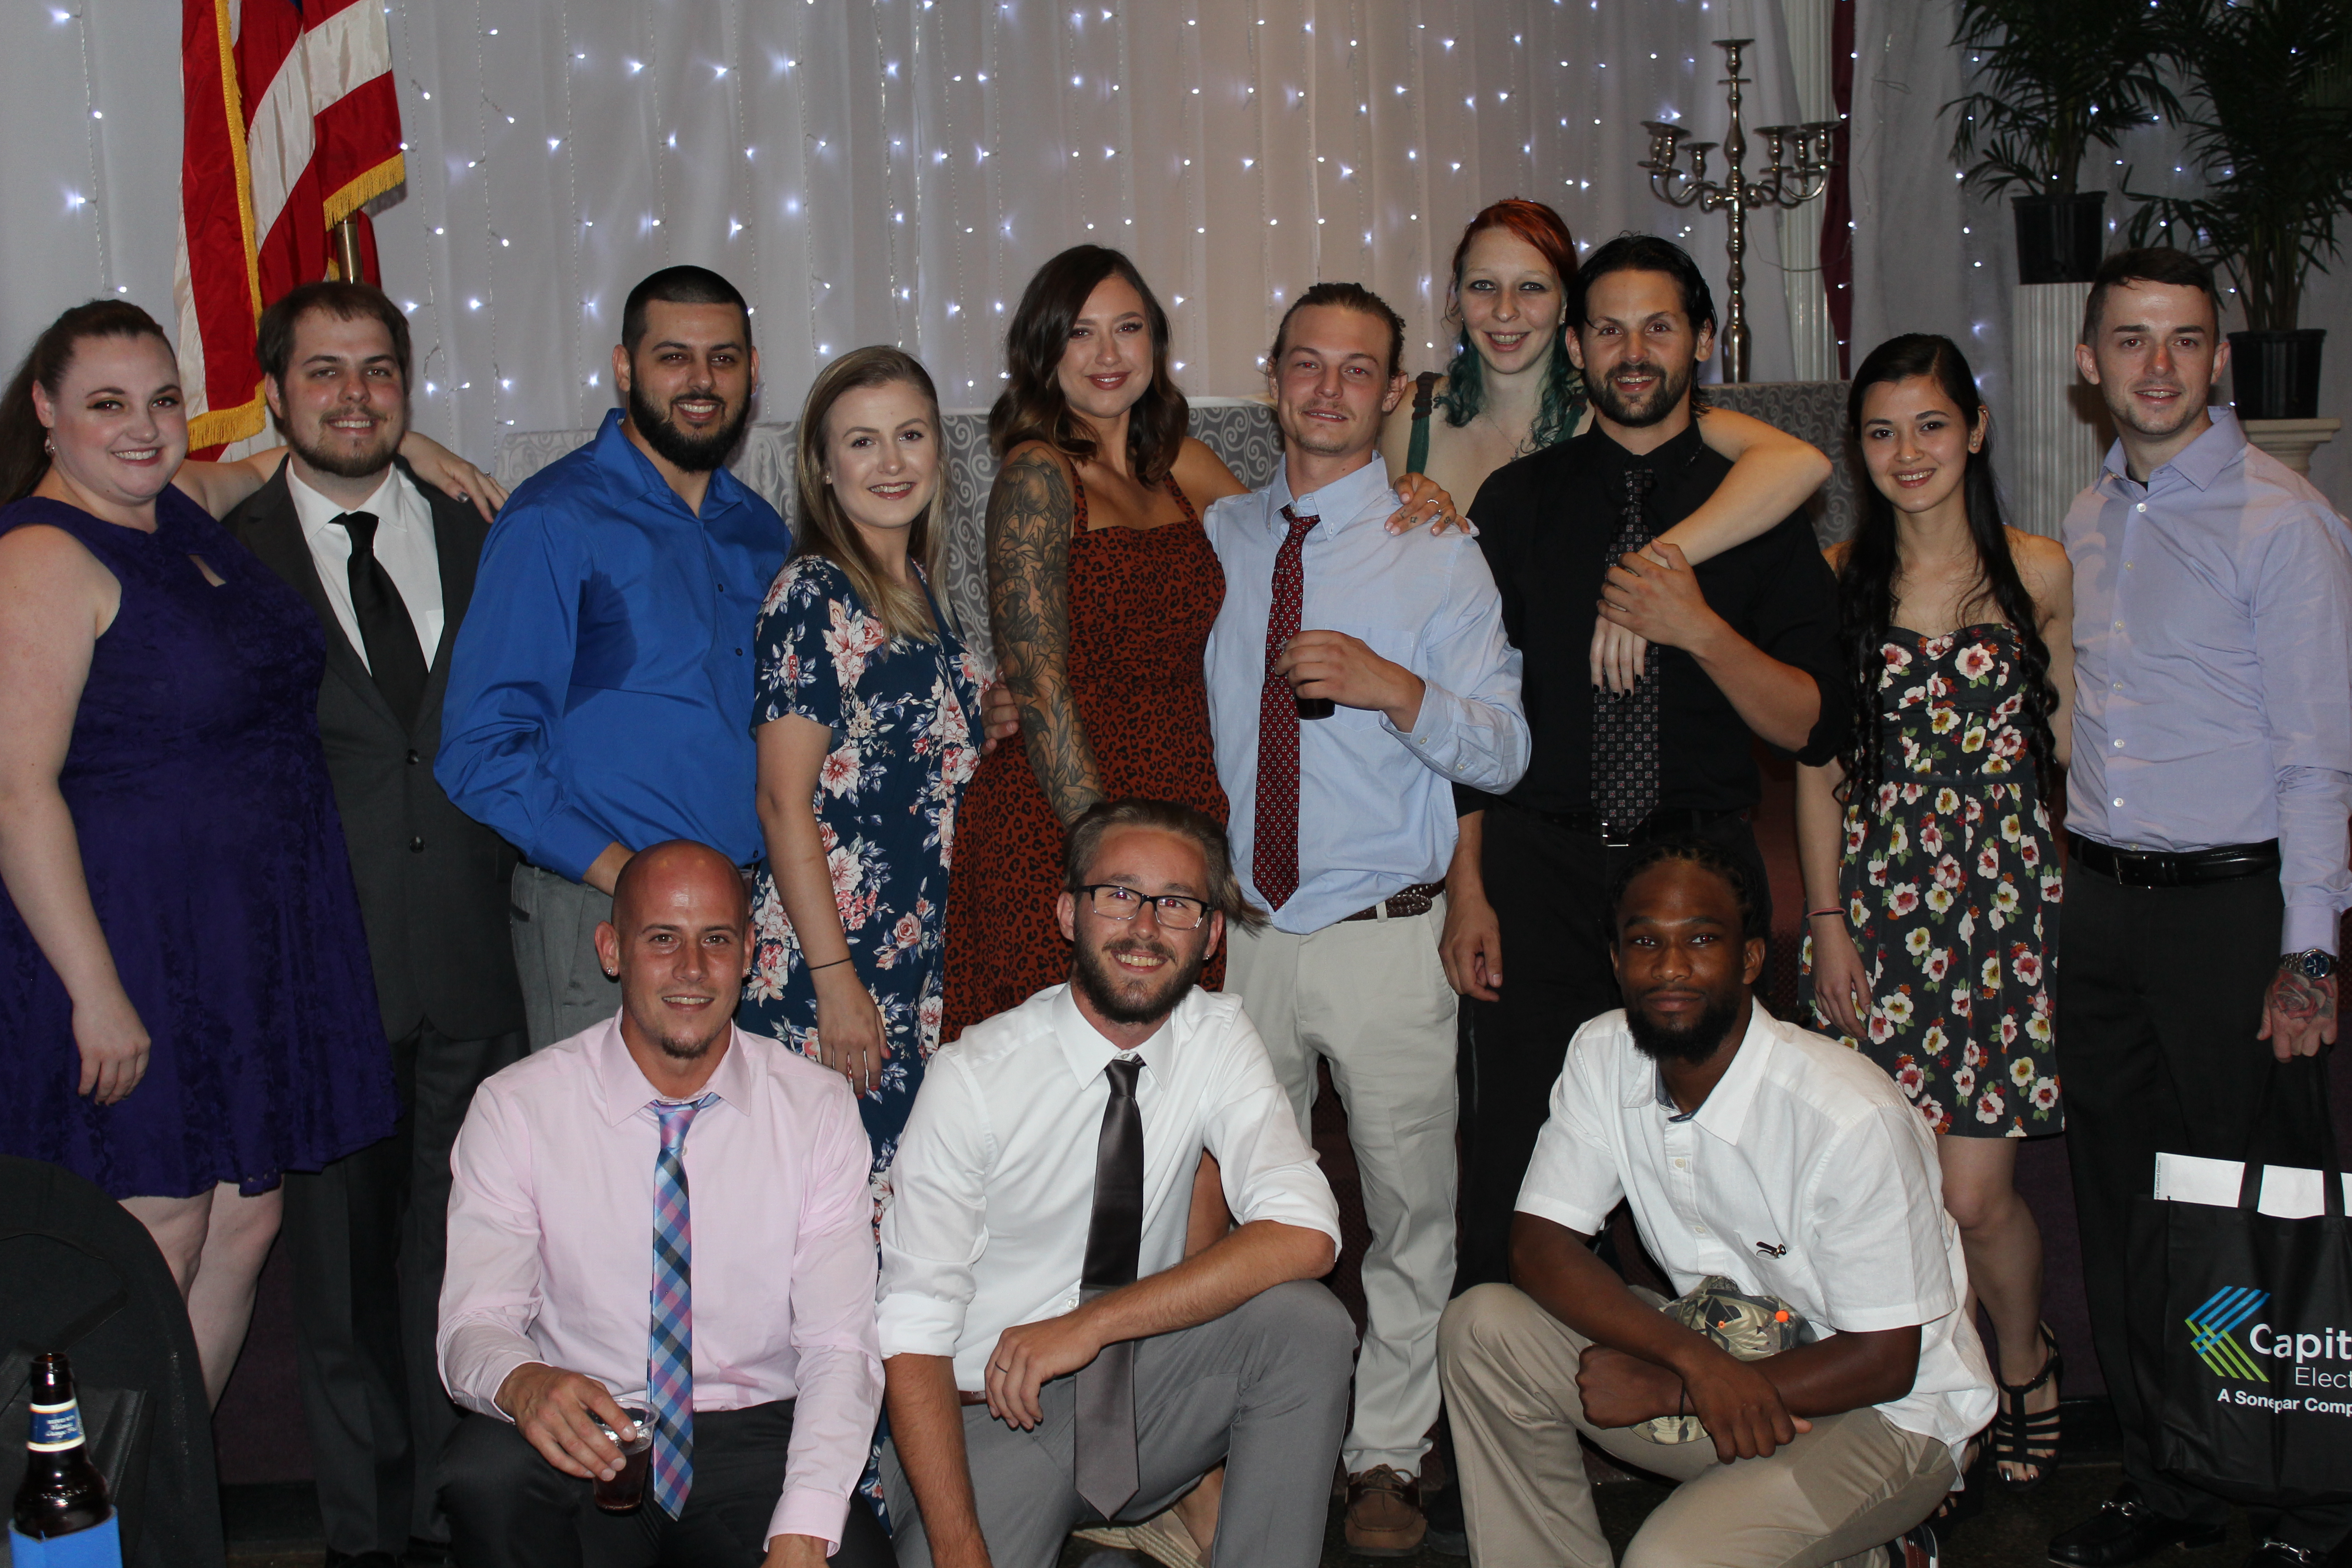 <br /><strong>Check out the photos from the 2019 JATC graduation celebration!